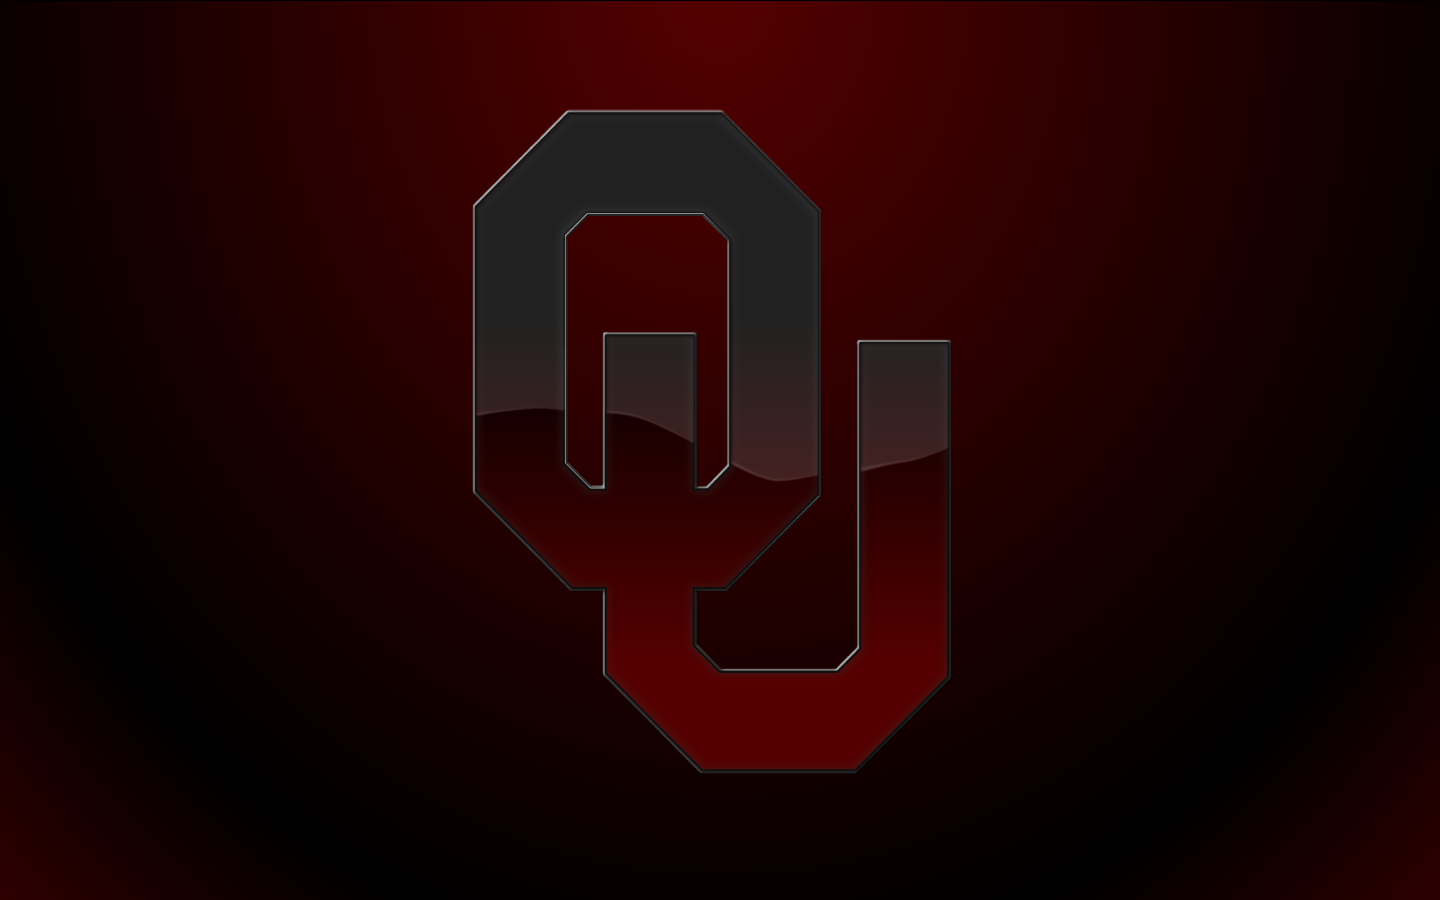 Oklahoma Sooners Chrome Wallpapers, Browser Themes and More - Brand ...